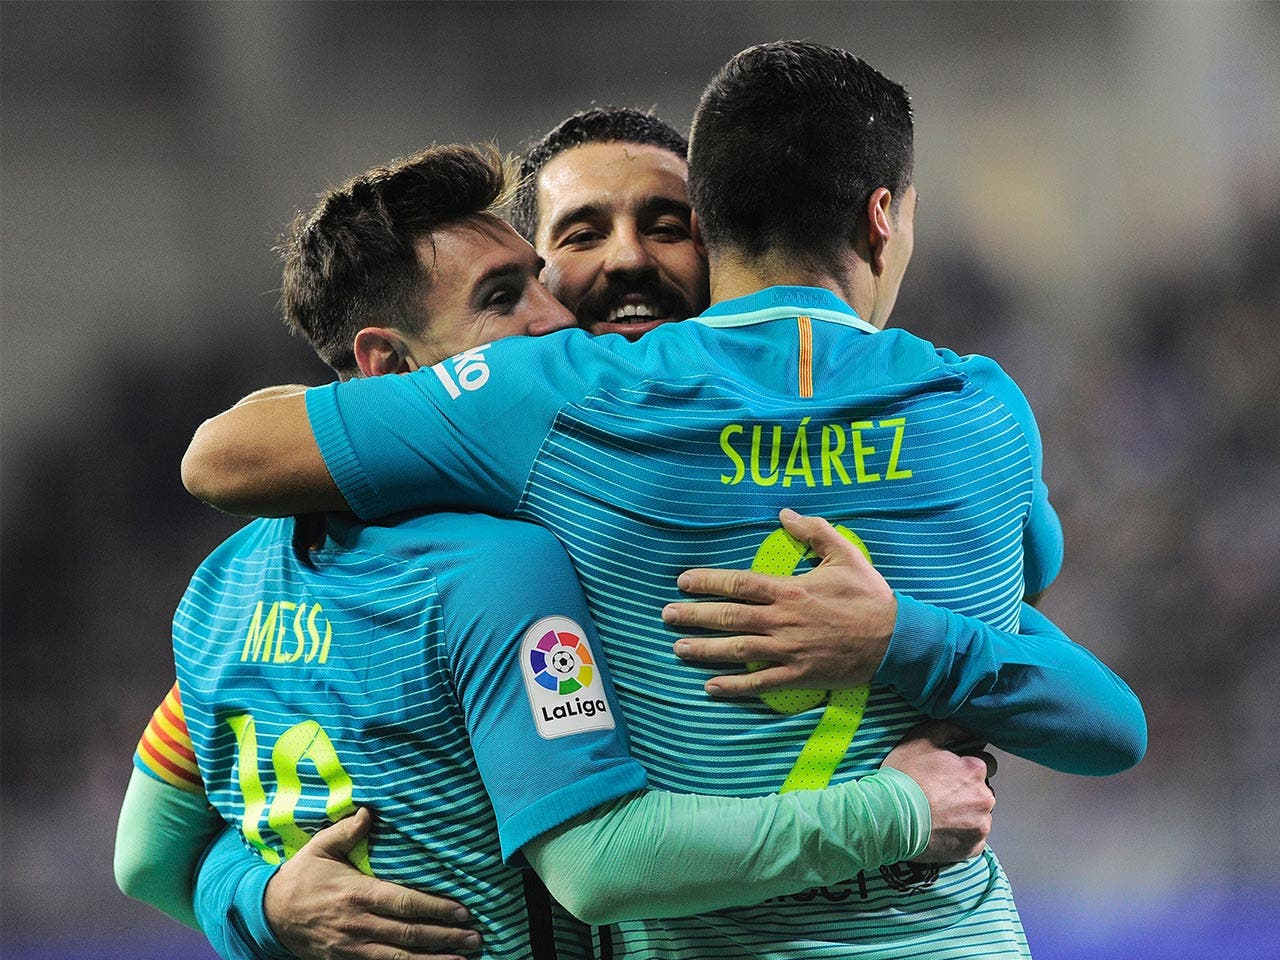 Suarez, Messi, team hug | ANDER GILLENEA/Getty Images